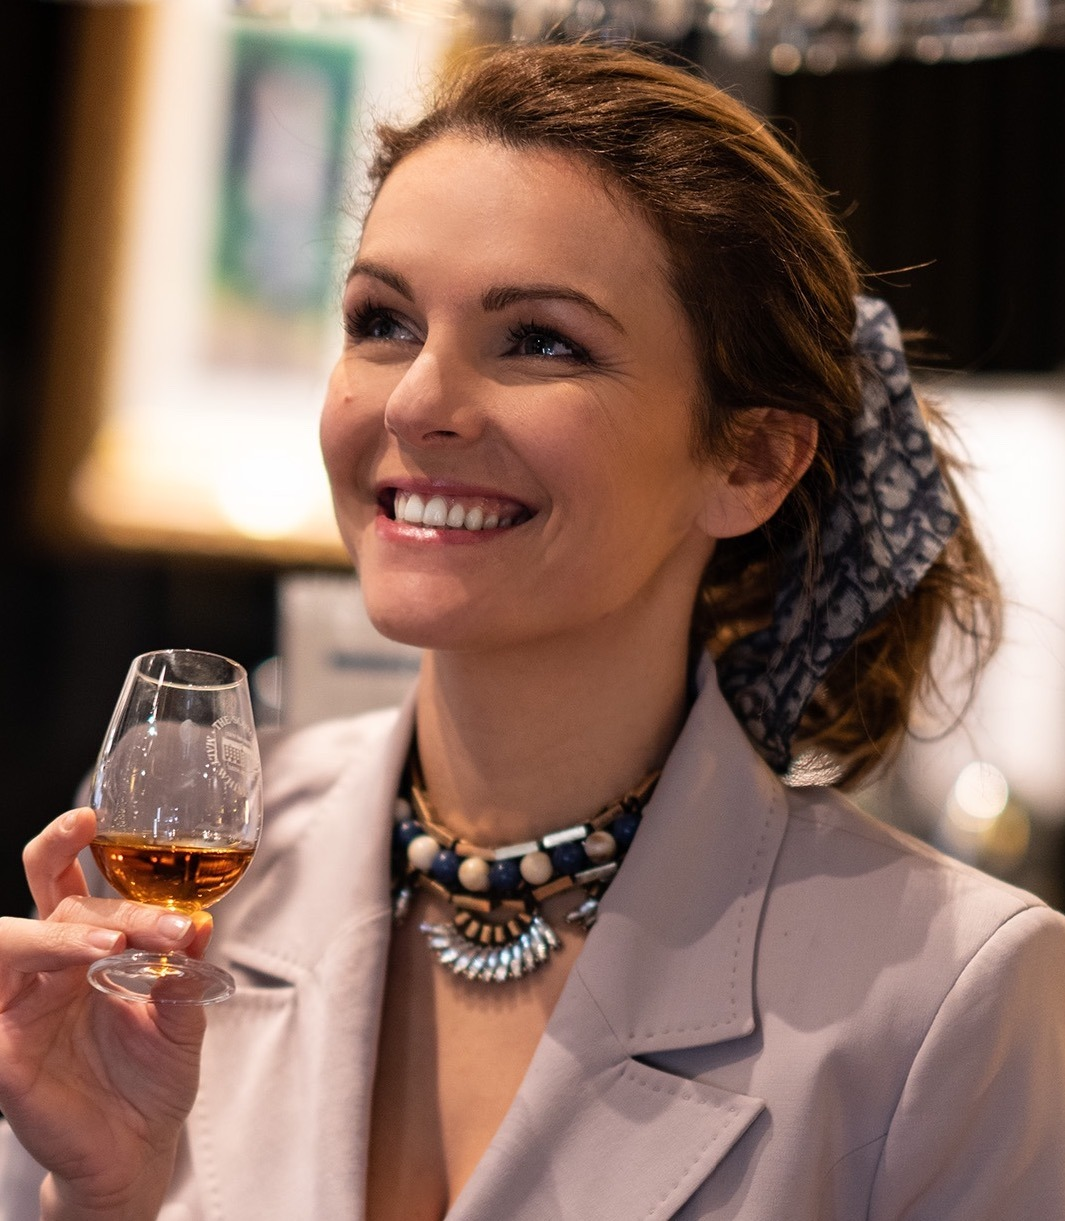 Drinking whisky in a Celine blazet and Dior scarf